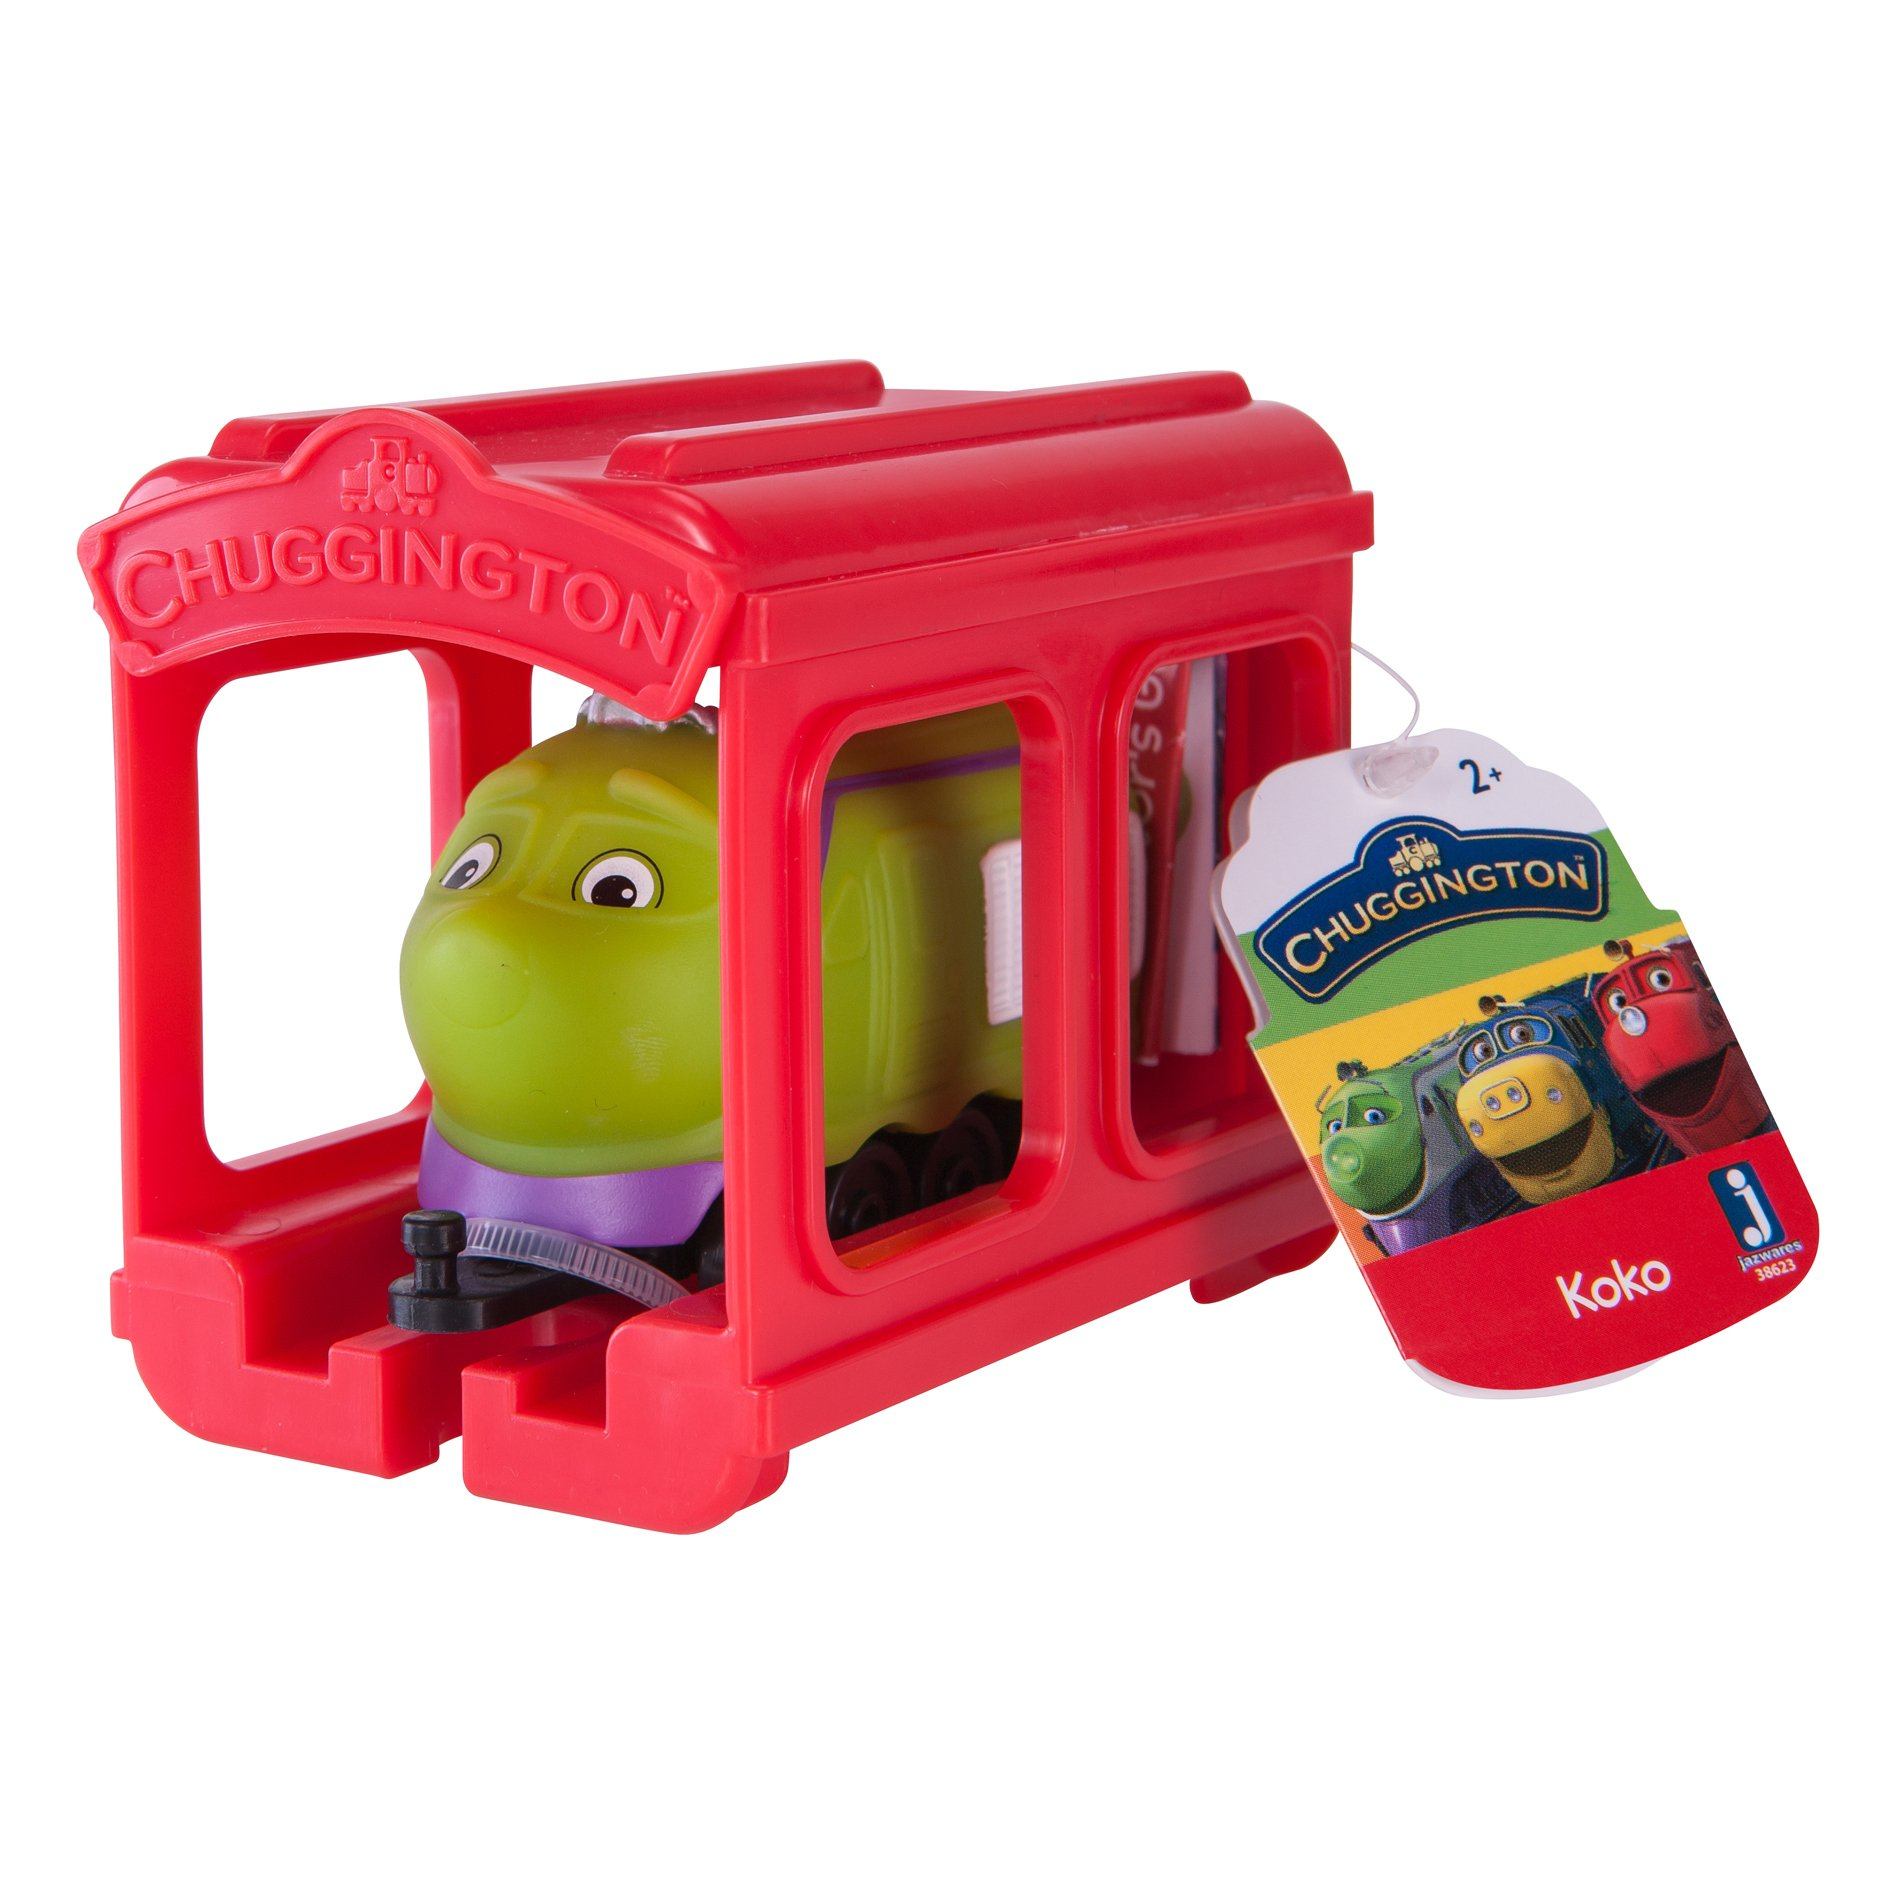 set locomotiva si garaj chuggington - koko